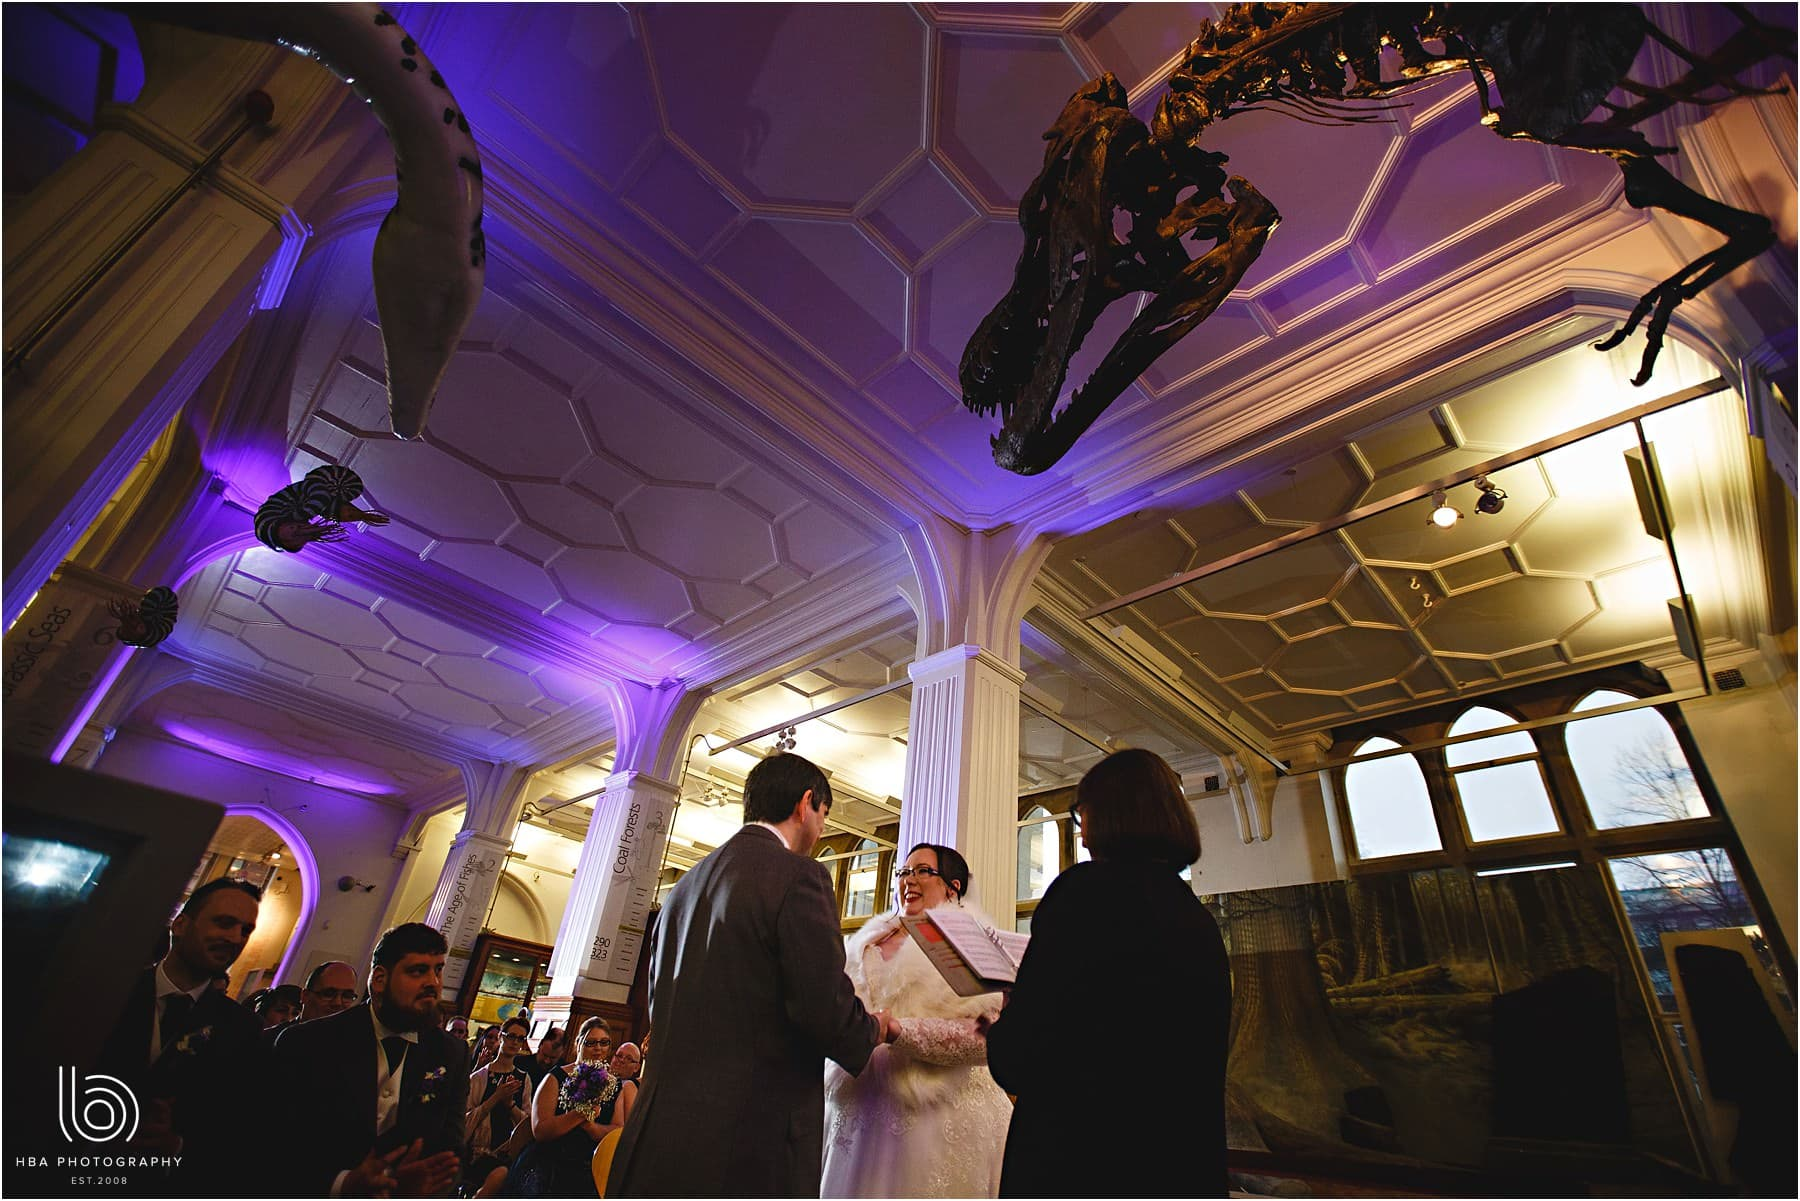 the bride & groom getting married under the T-Rex